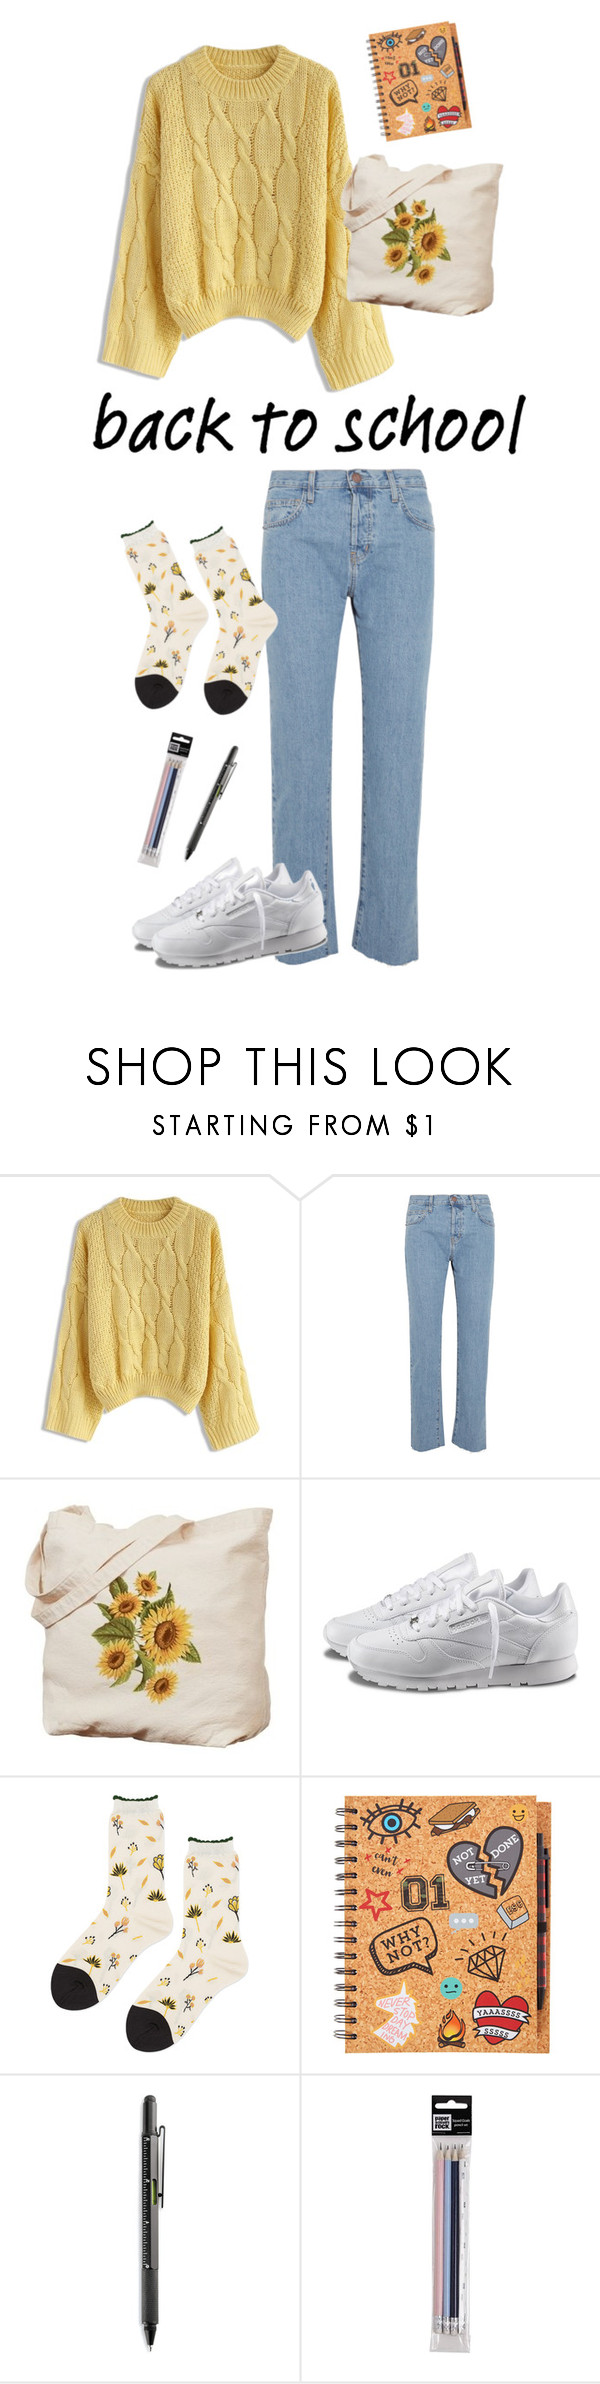 """47."" by olinka1408 ❤ liked on Polyvore featuring Chicwish, Current/Elliott, Reebok, Hansel from Basel and Brookstone"